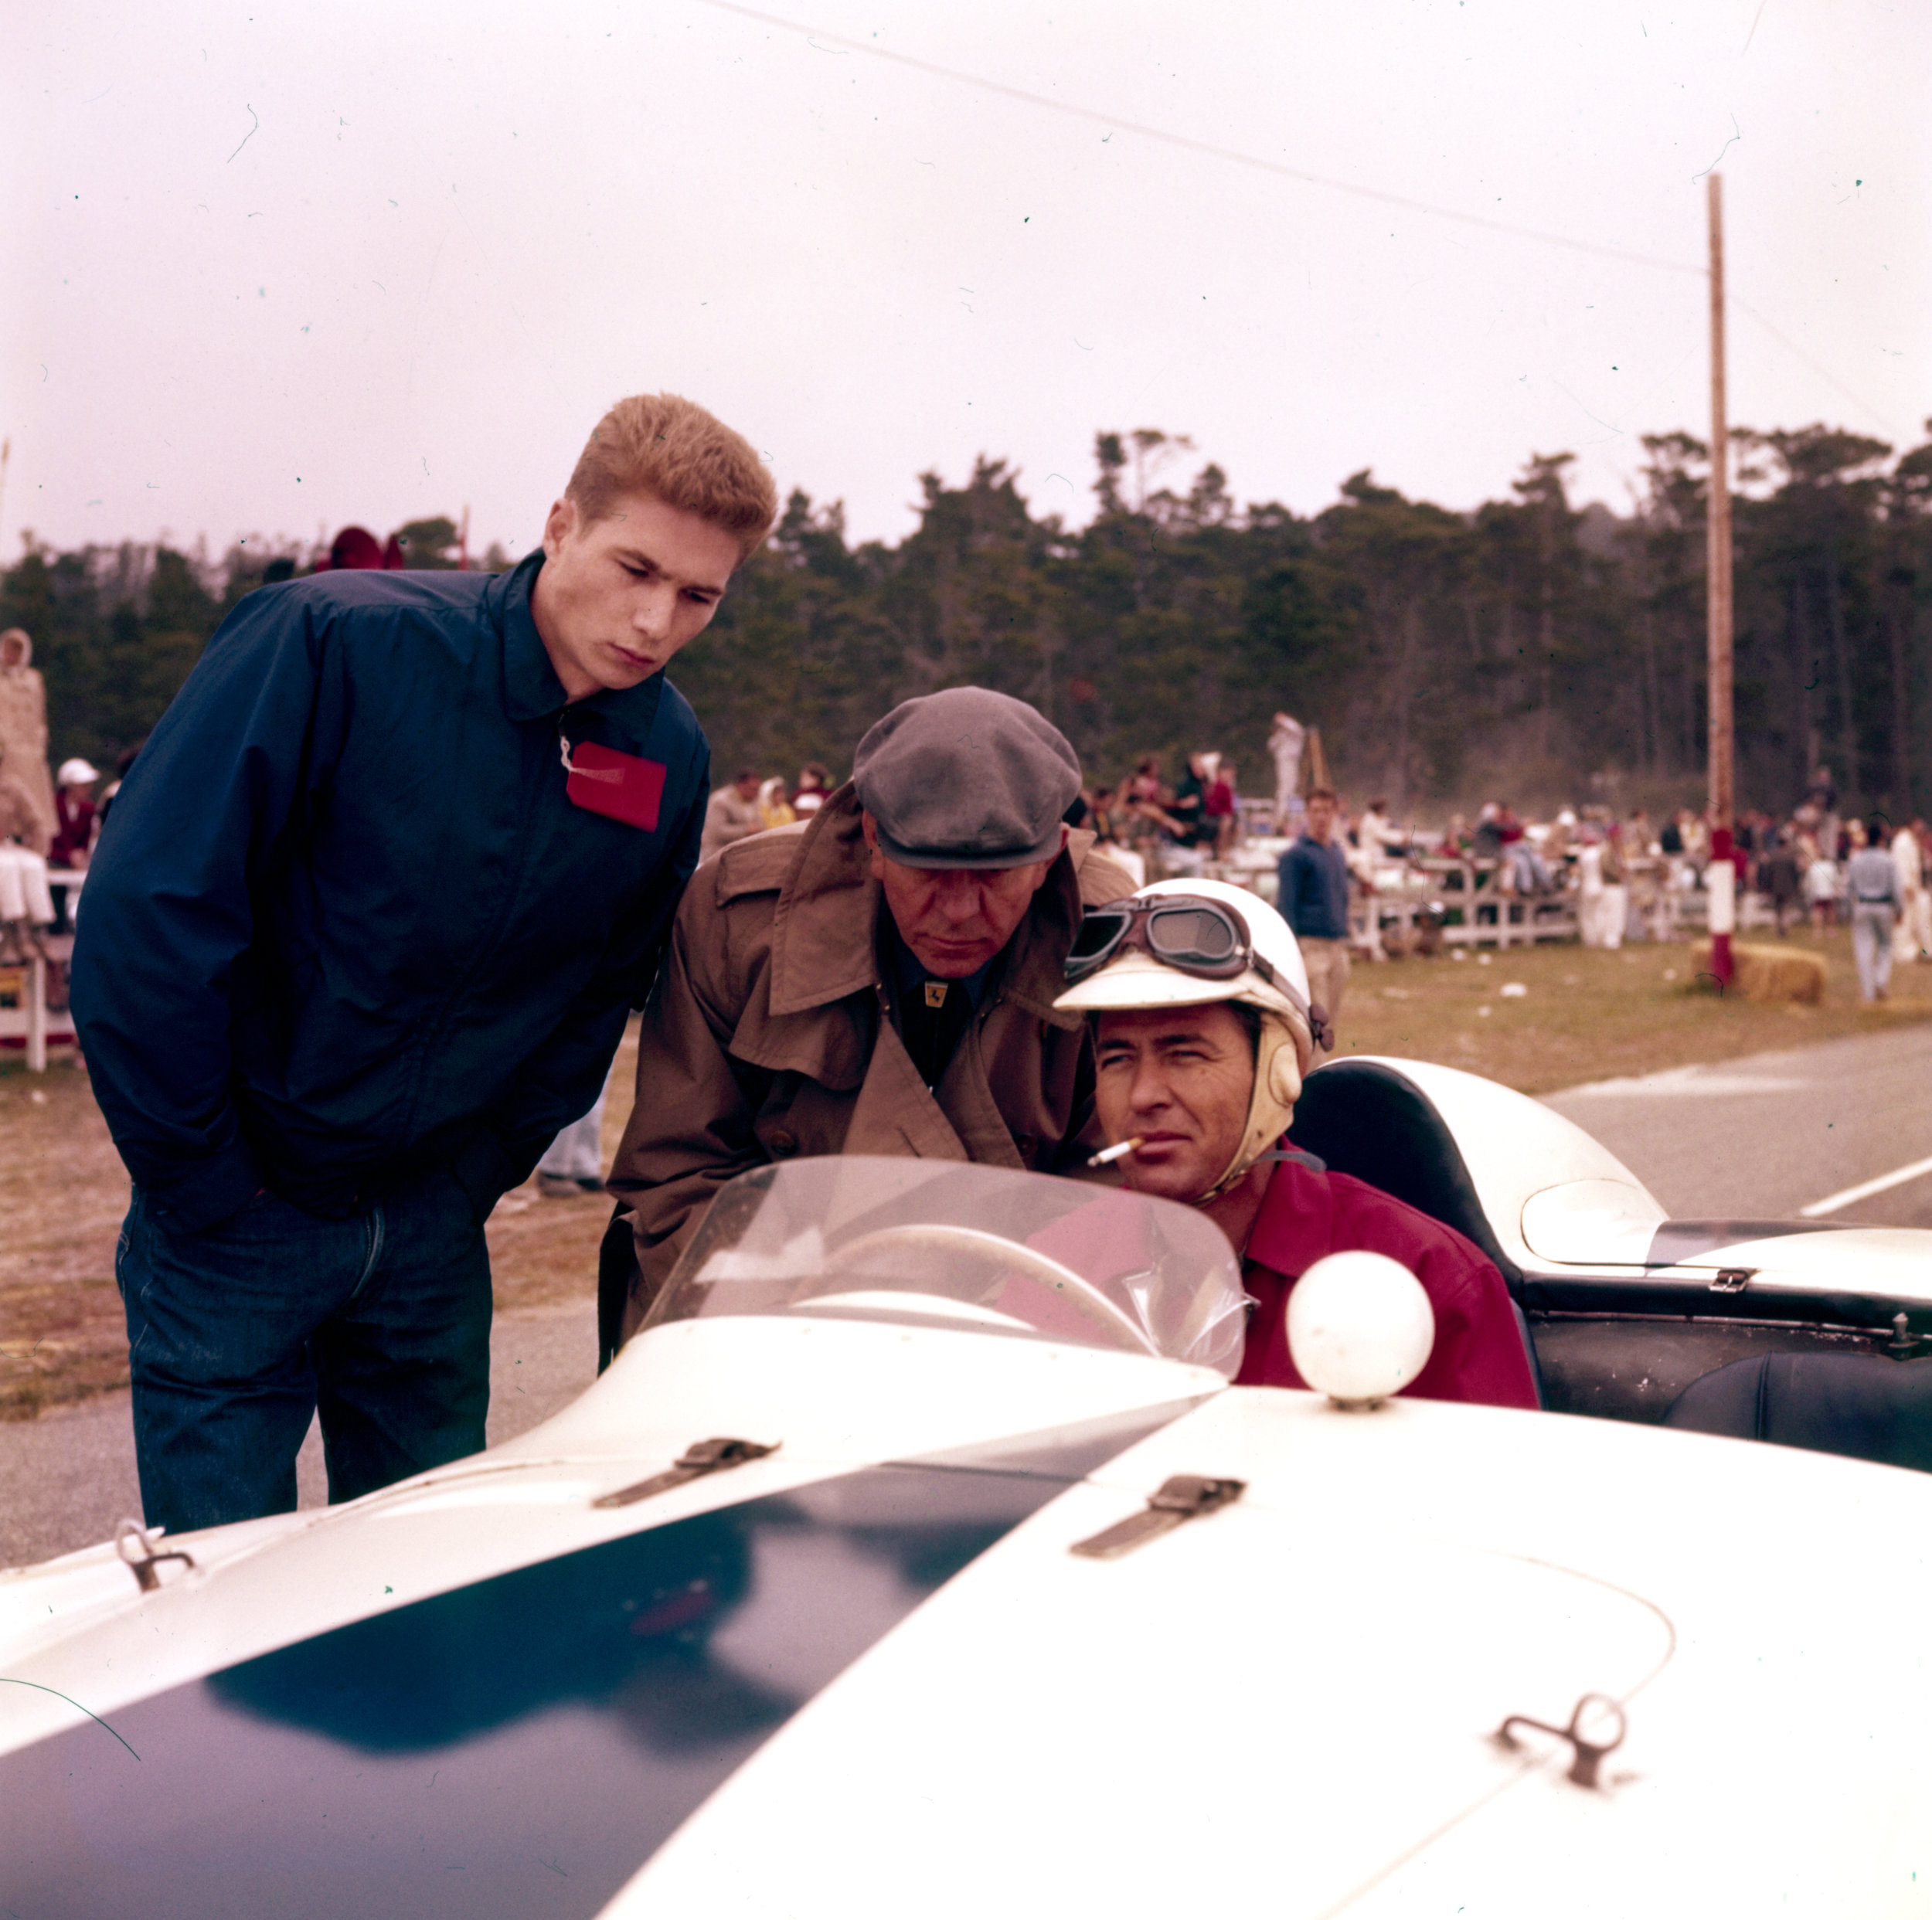 Carroll Shelby in car   Pebble Beach 1956, texan, Carroll Shelby is shown here in Allen Guiberson's 750 Monza with a 21-year-old Texas oilman named Jim Hall (on left).